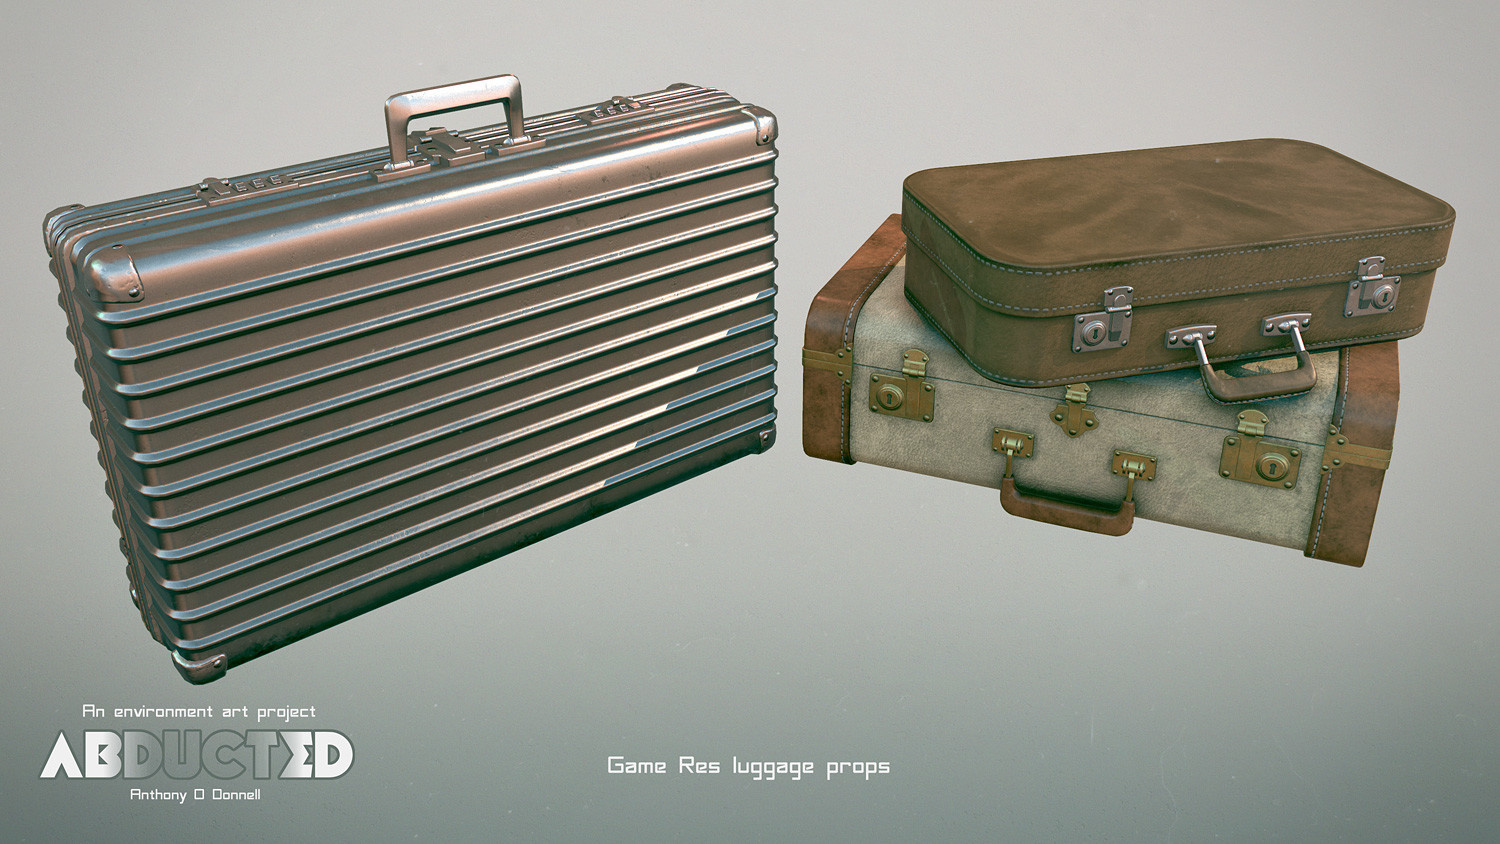 Game res suitcases